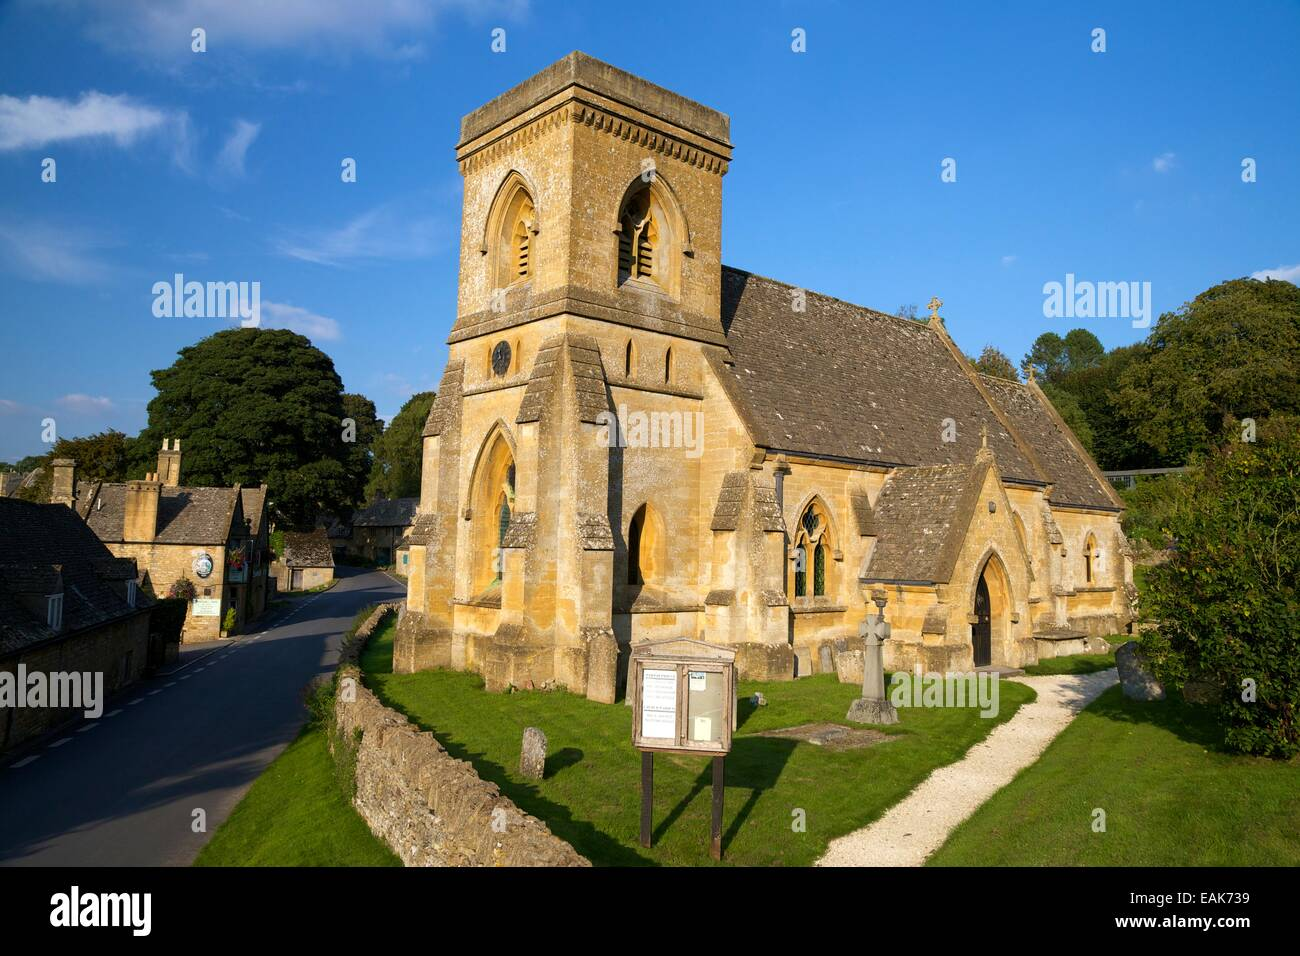 St Barnabas Church in evening sunshine, Snowshill, Cotswolds, Gloucestershire, England, UK, GB, Europe - Stock Image